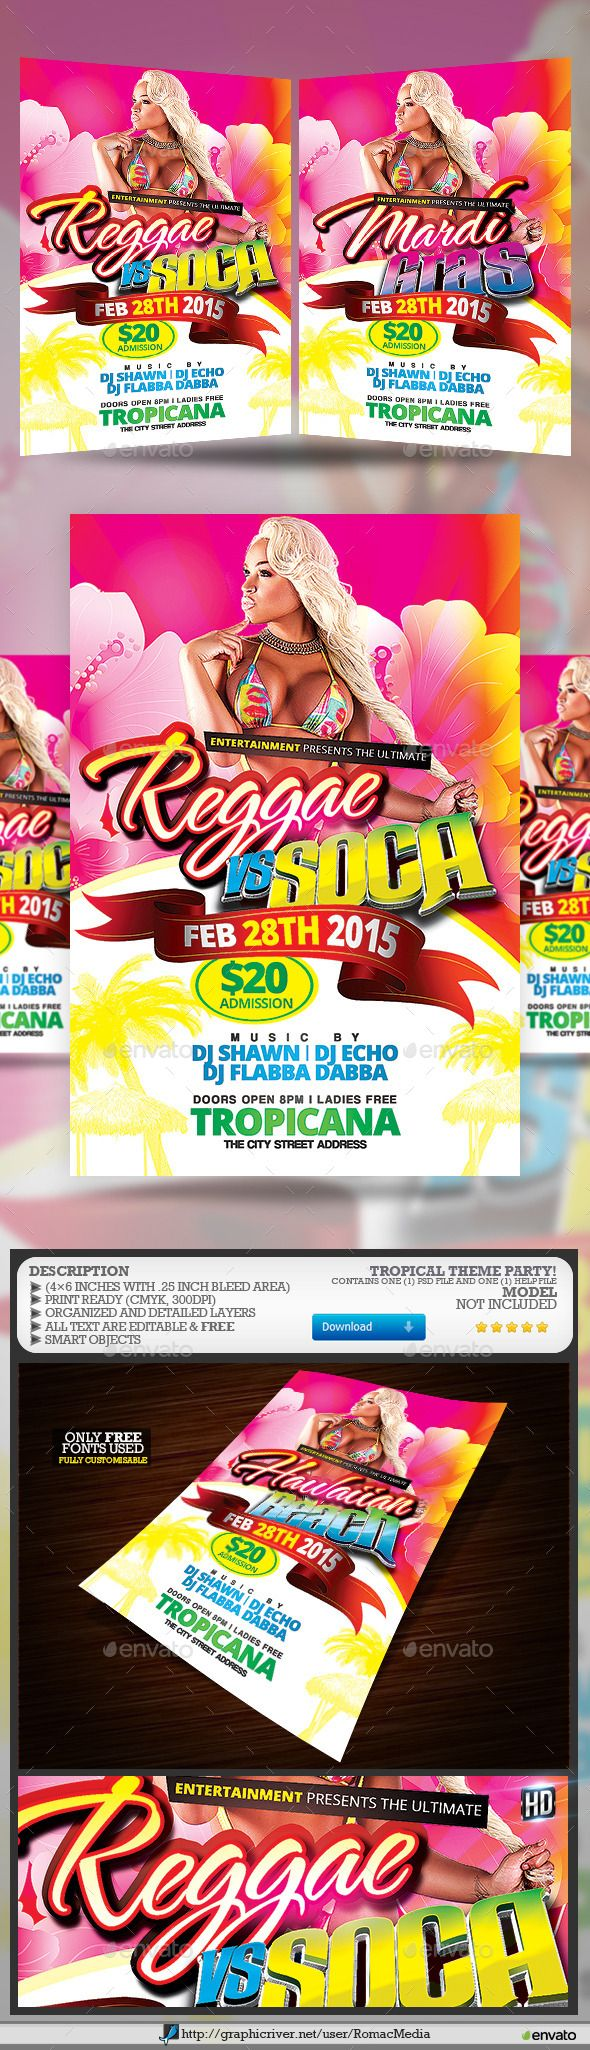 Tropical #Theme #Party #Flyer - Clubs & Parties #Events Download here: https://graphicriver.net/item/tropical-theme-party-flyer/10204084?ref=alena994